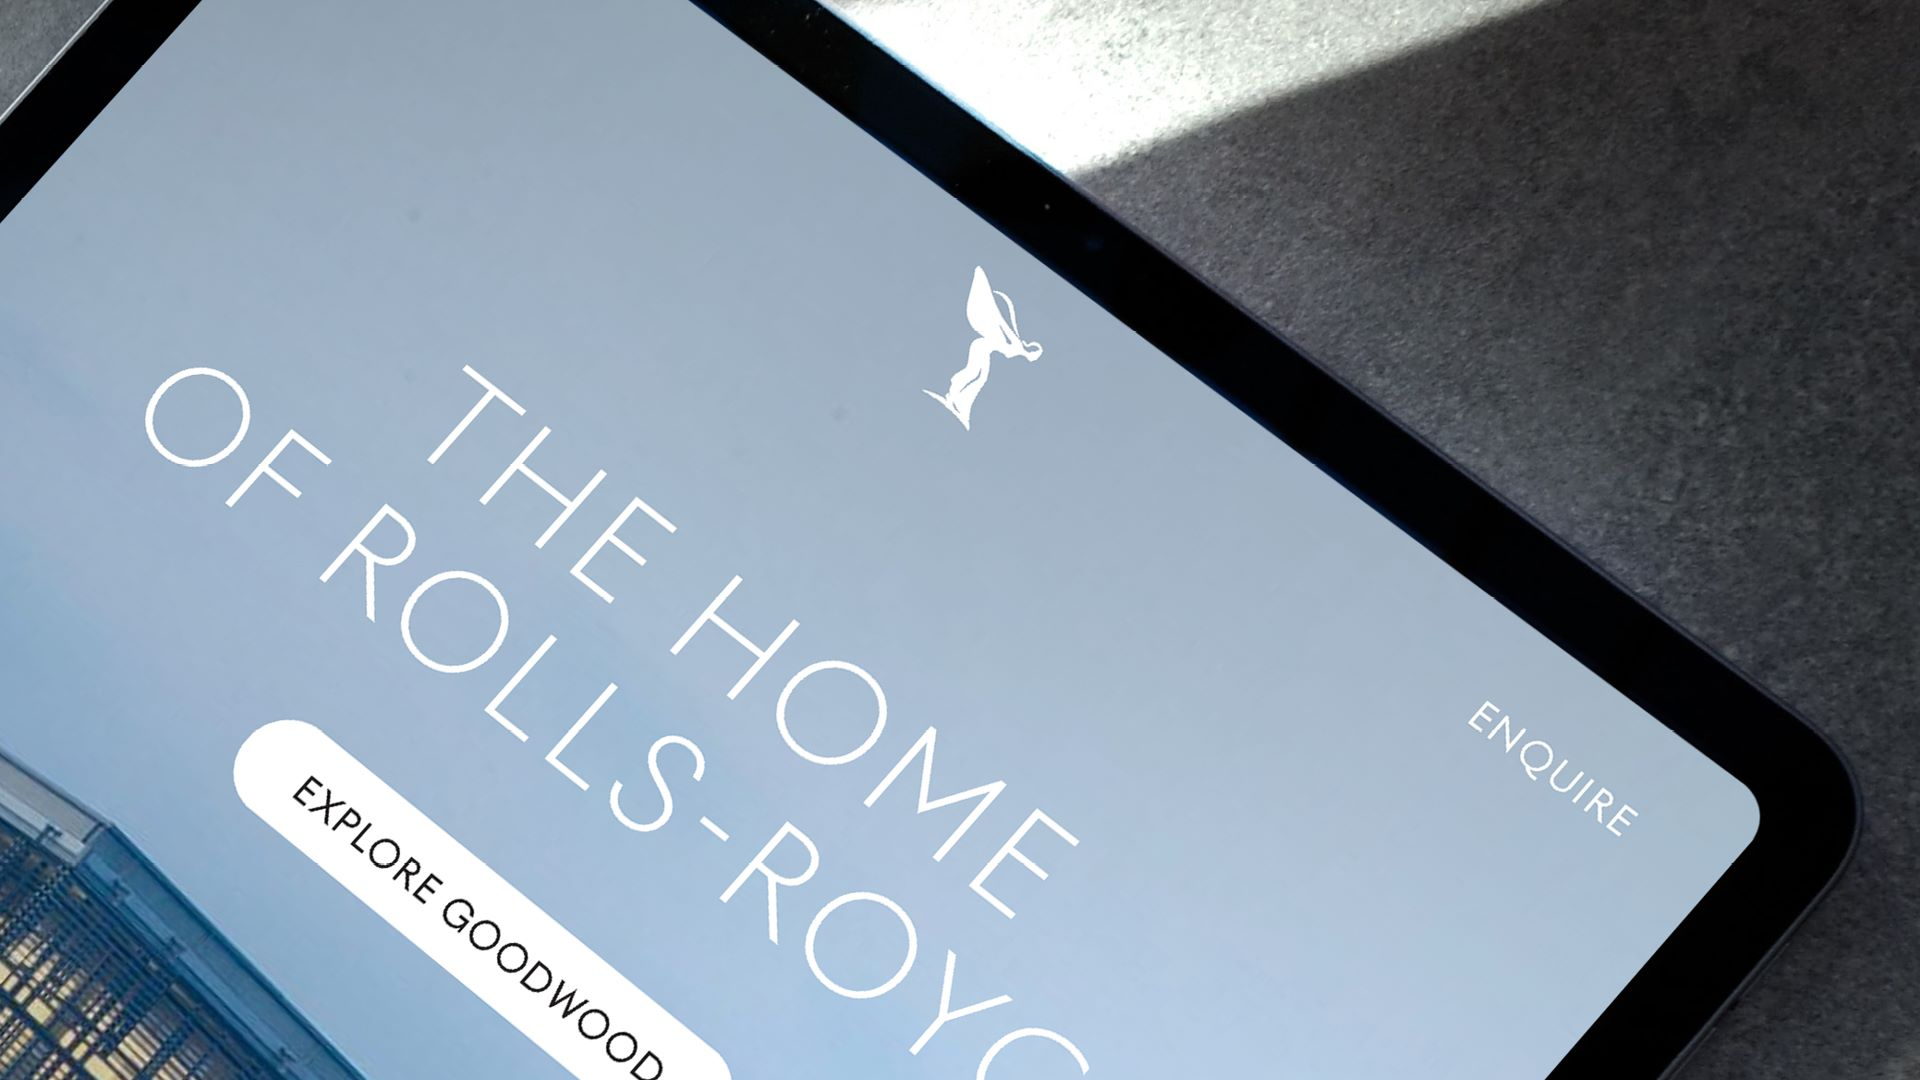 Rolls-Royce-logo-and-House-of-Luxury-24